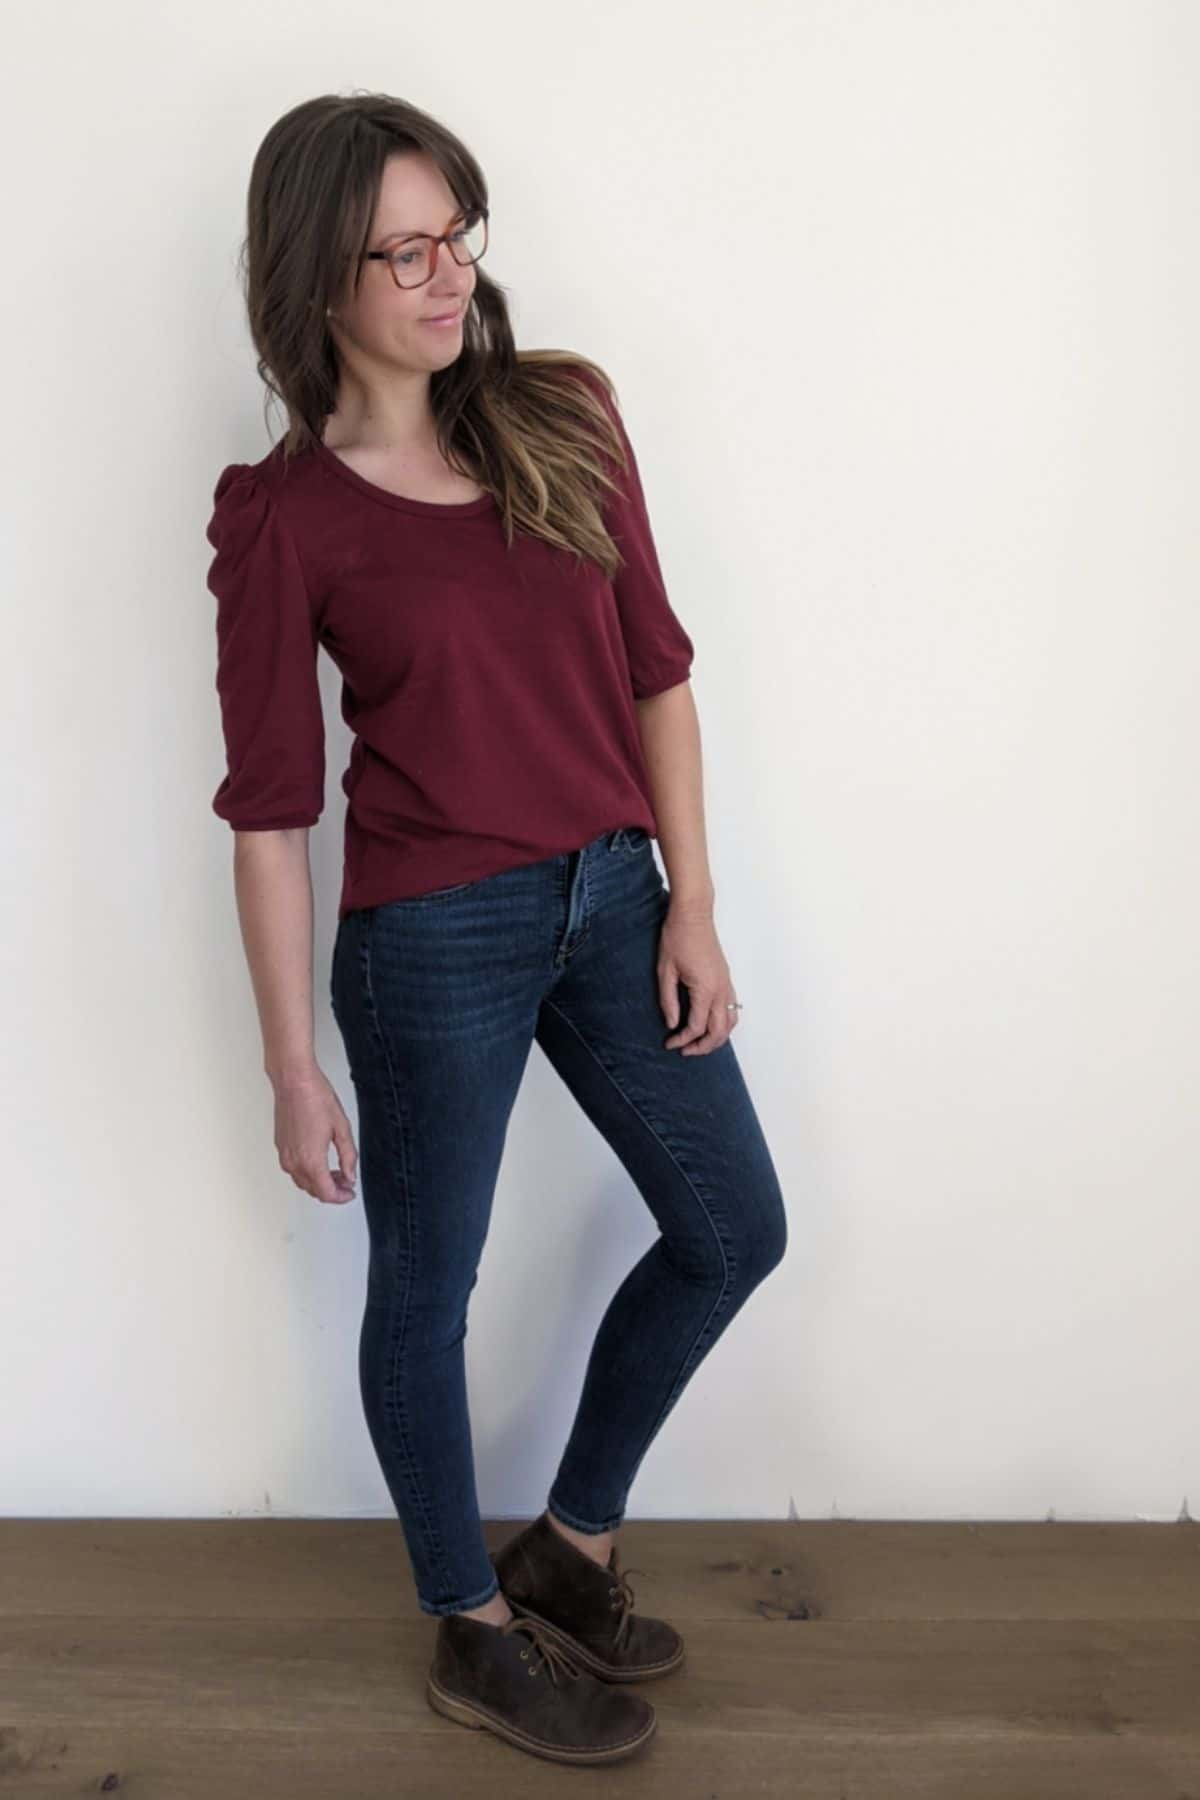 woman stands on wood floor against a white wall. She's wearing skinny blue jeans and a burgundy t-shirt with banded half sleeve puffy sleeves